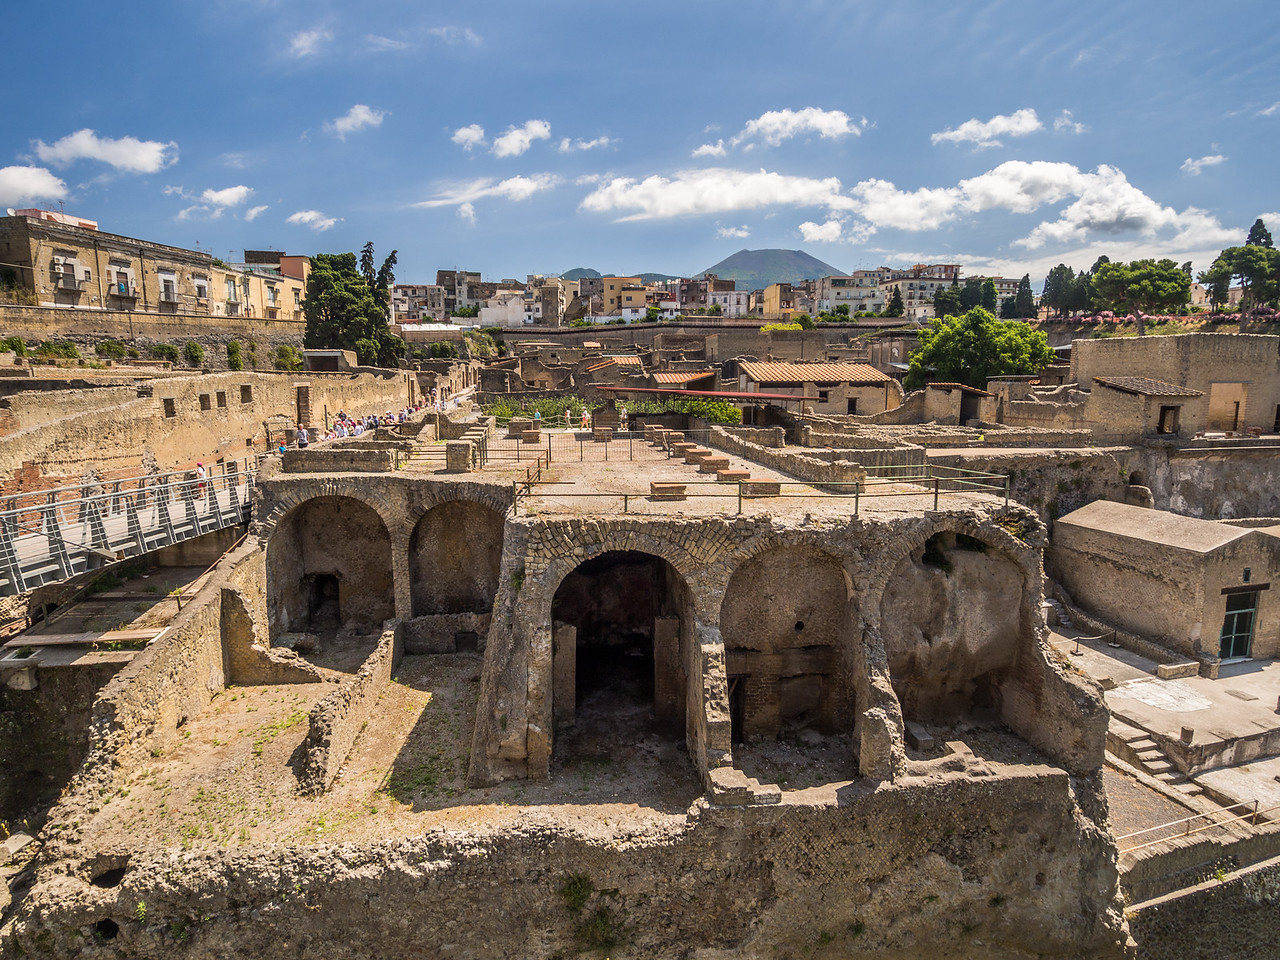 View over the Ruins of Herculaneum